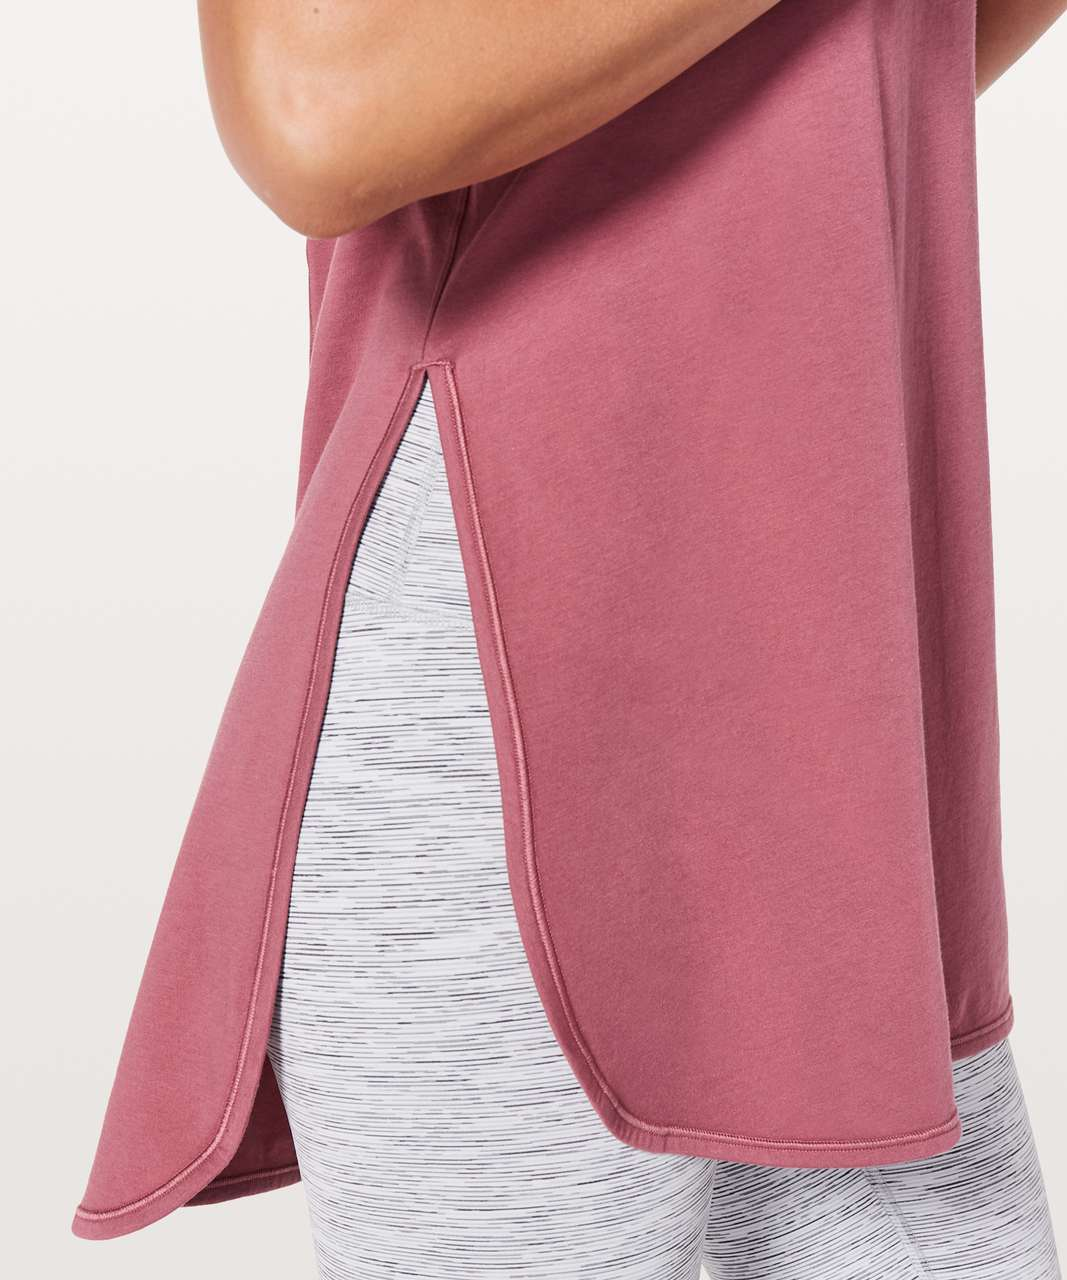 Lululemon Side Story Tank - Moss Rose